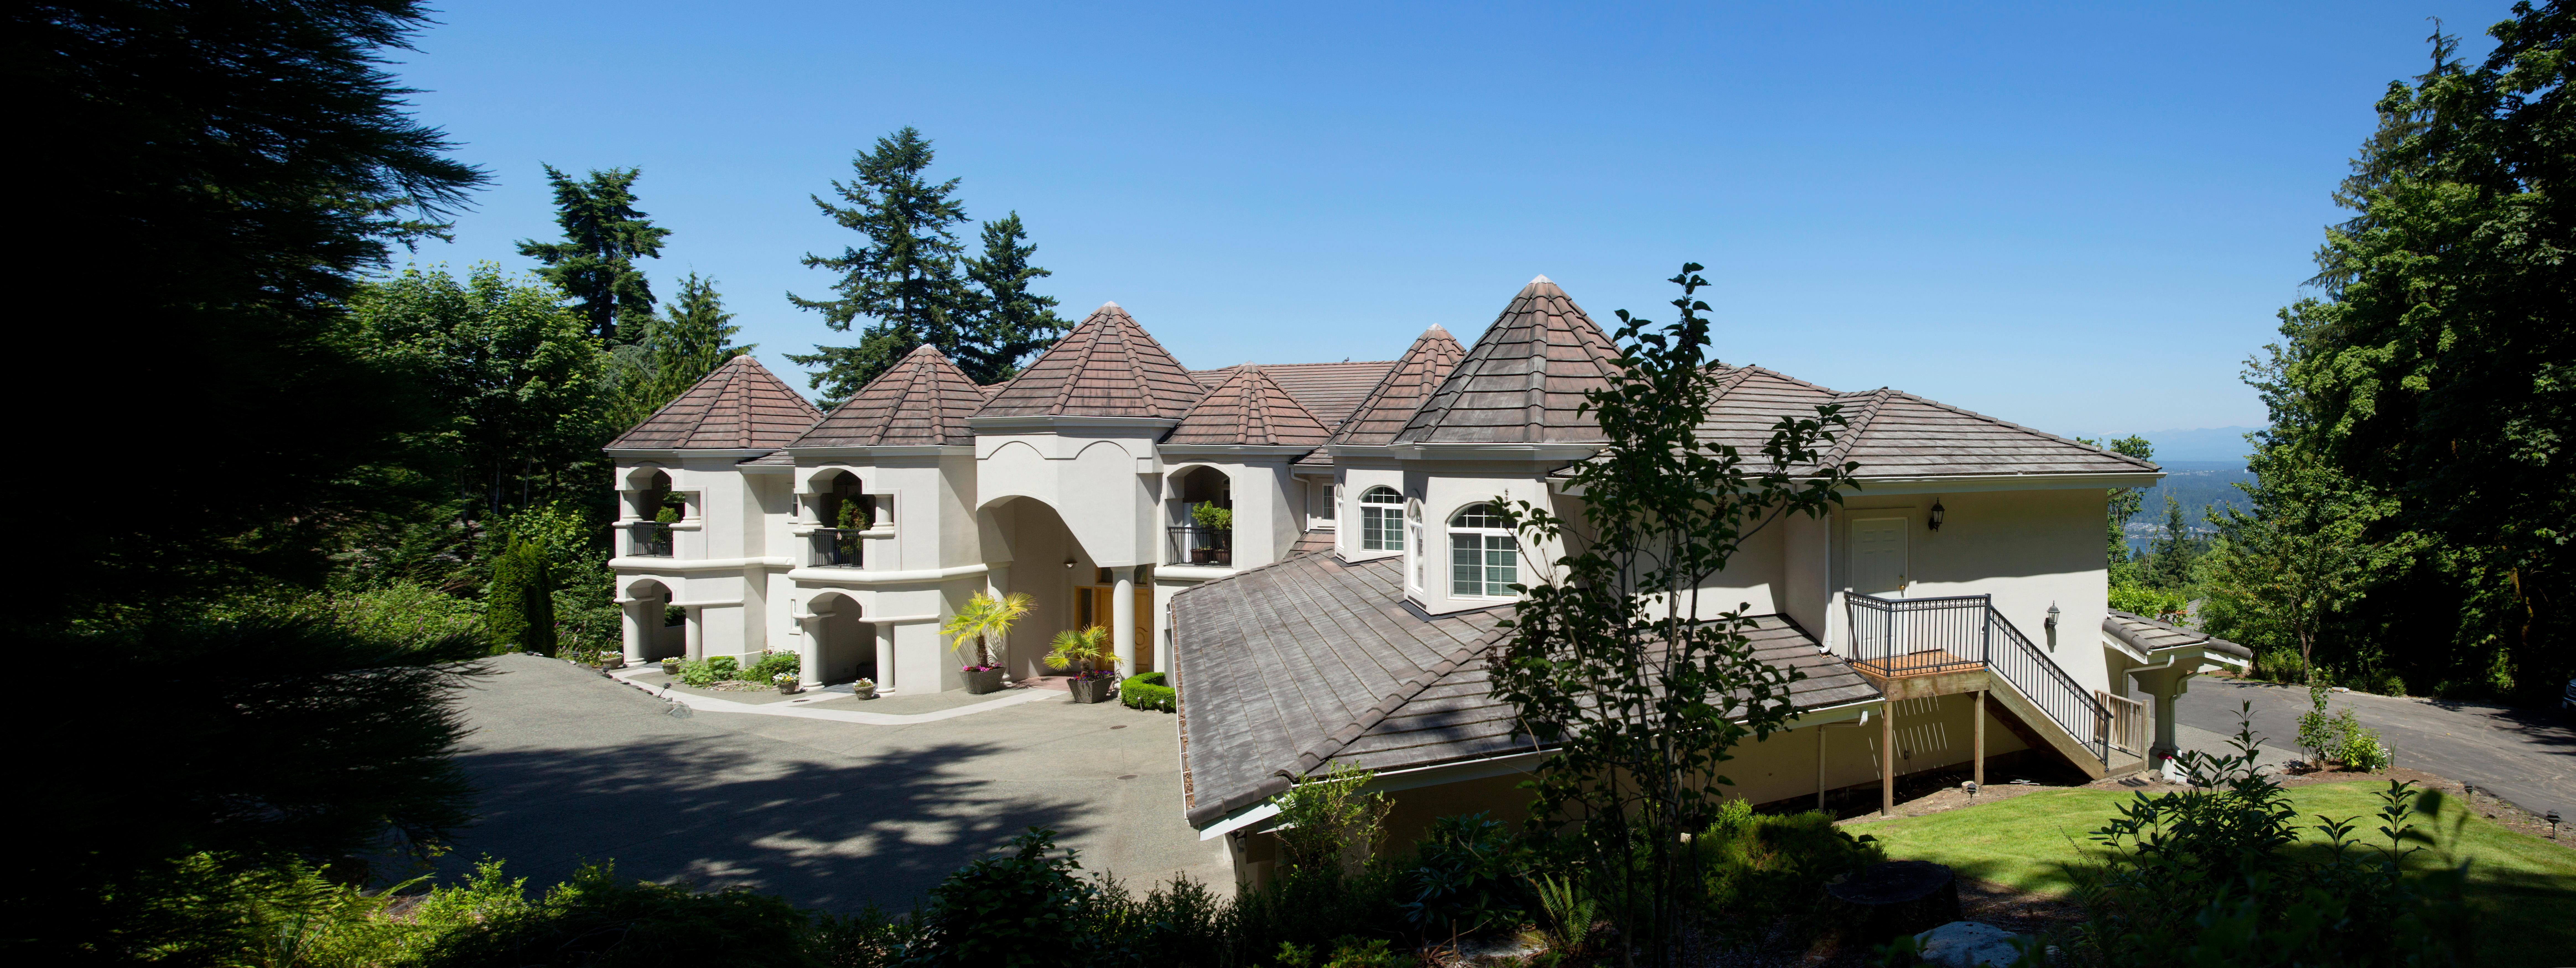 Listed by Realogic Sotheby's this Bollywood Mansion brings India inspired luxury to Bellevue. Listed at $5,999,950, the Bollywood Mansion is built for a large family - 13 bedrooms, 9 full baths, 1 partial bath, 15,360 square feet, and sits on 1.89 acres. Enjoy the gallery, this home is exquisite. (Image: Sy Bean / Seattle Refined)